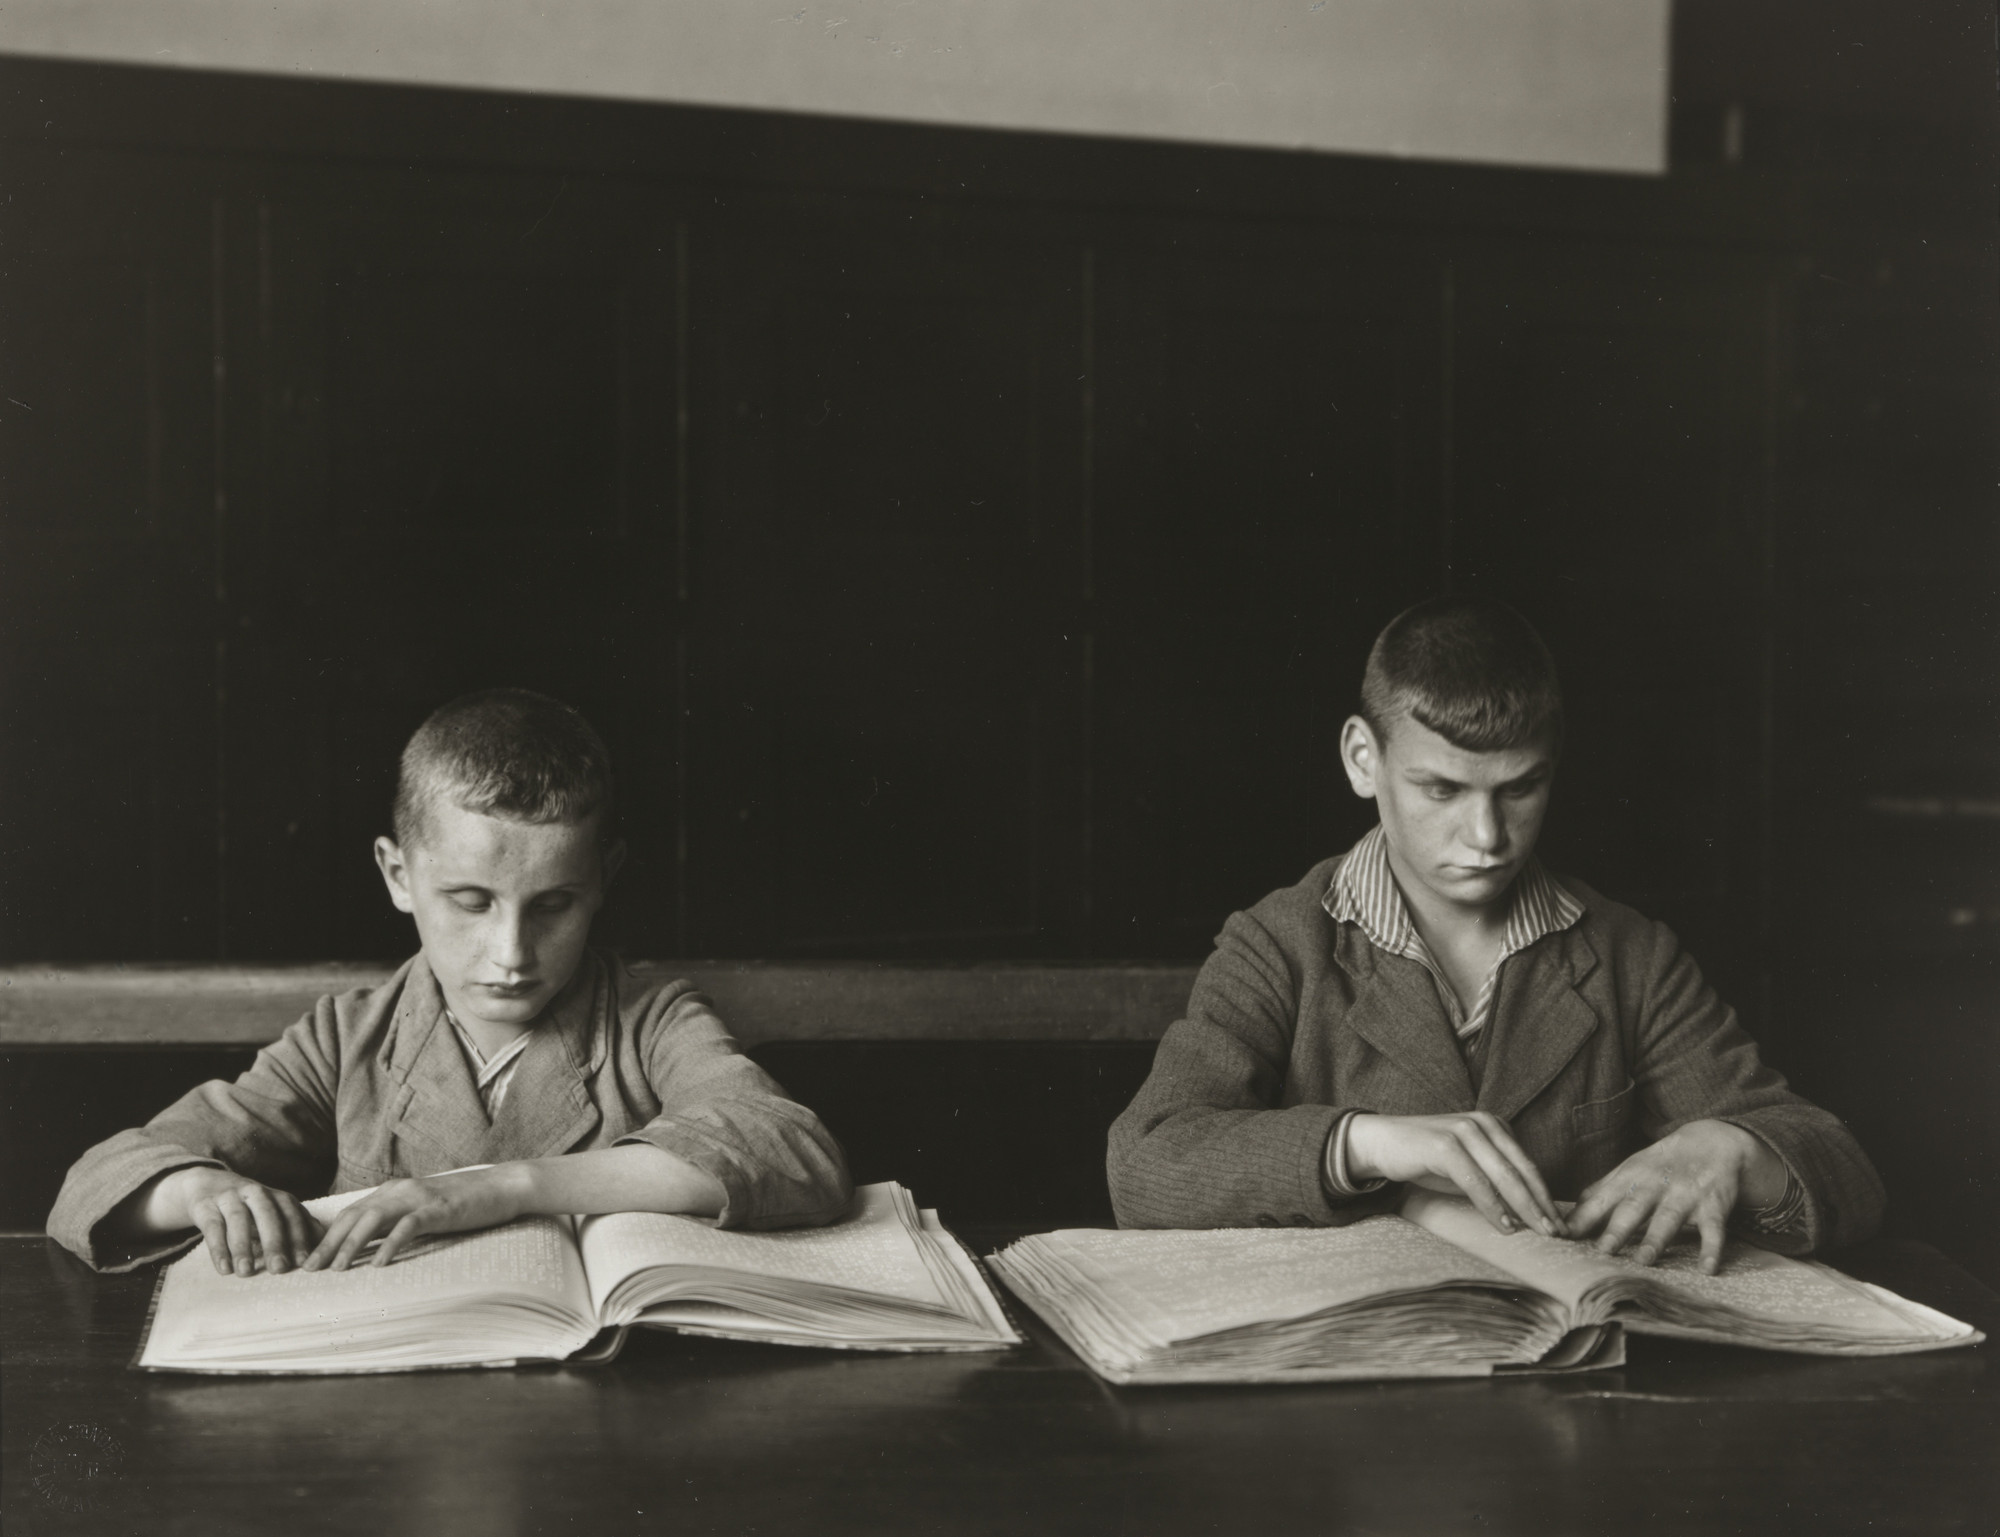 August Sander. Blind Children. c. 1930